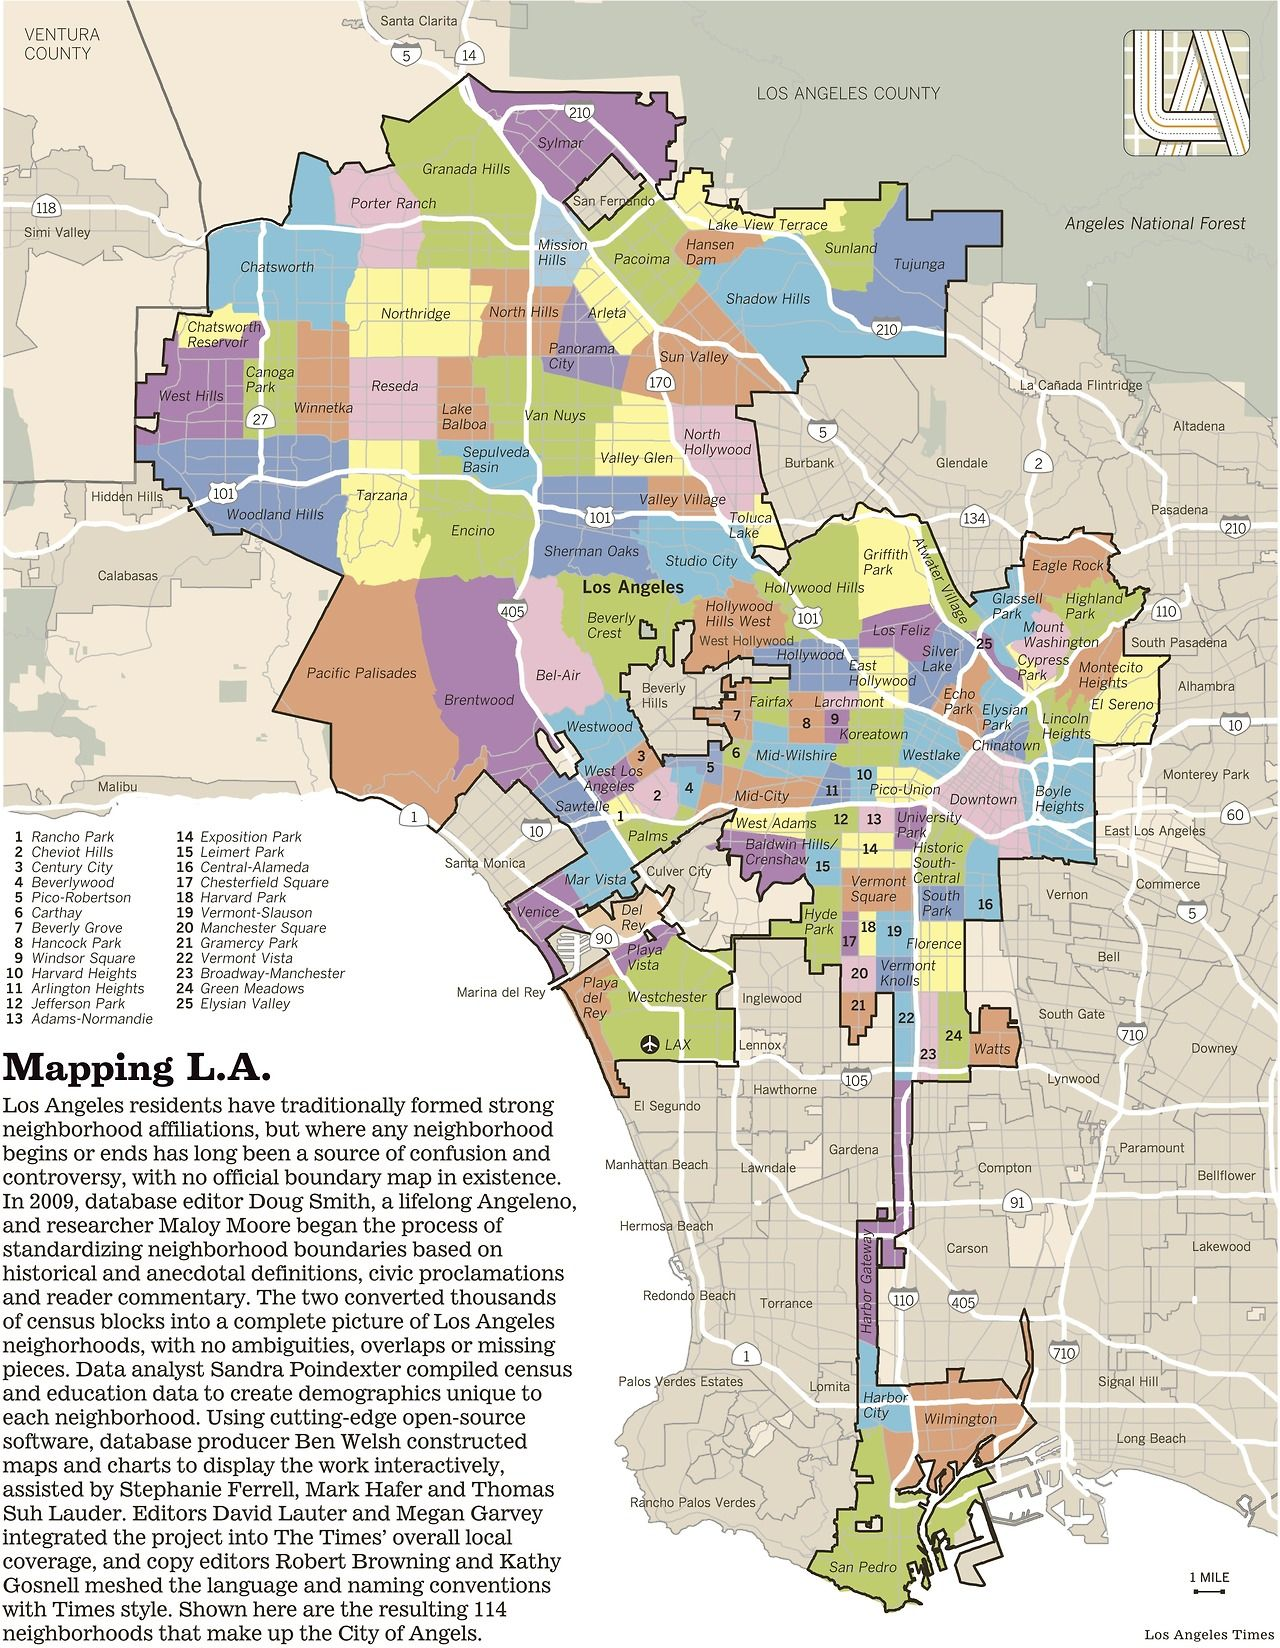 Los Angeles City Map maptitude1: This map shows the many neighborhoods of the sprawling